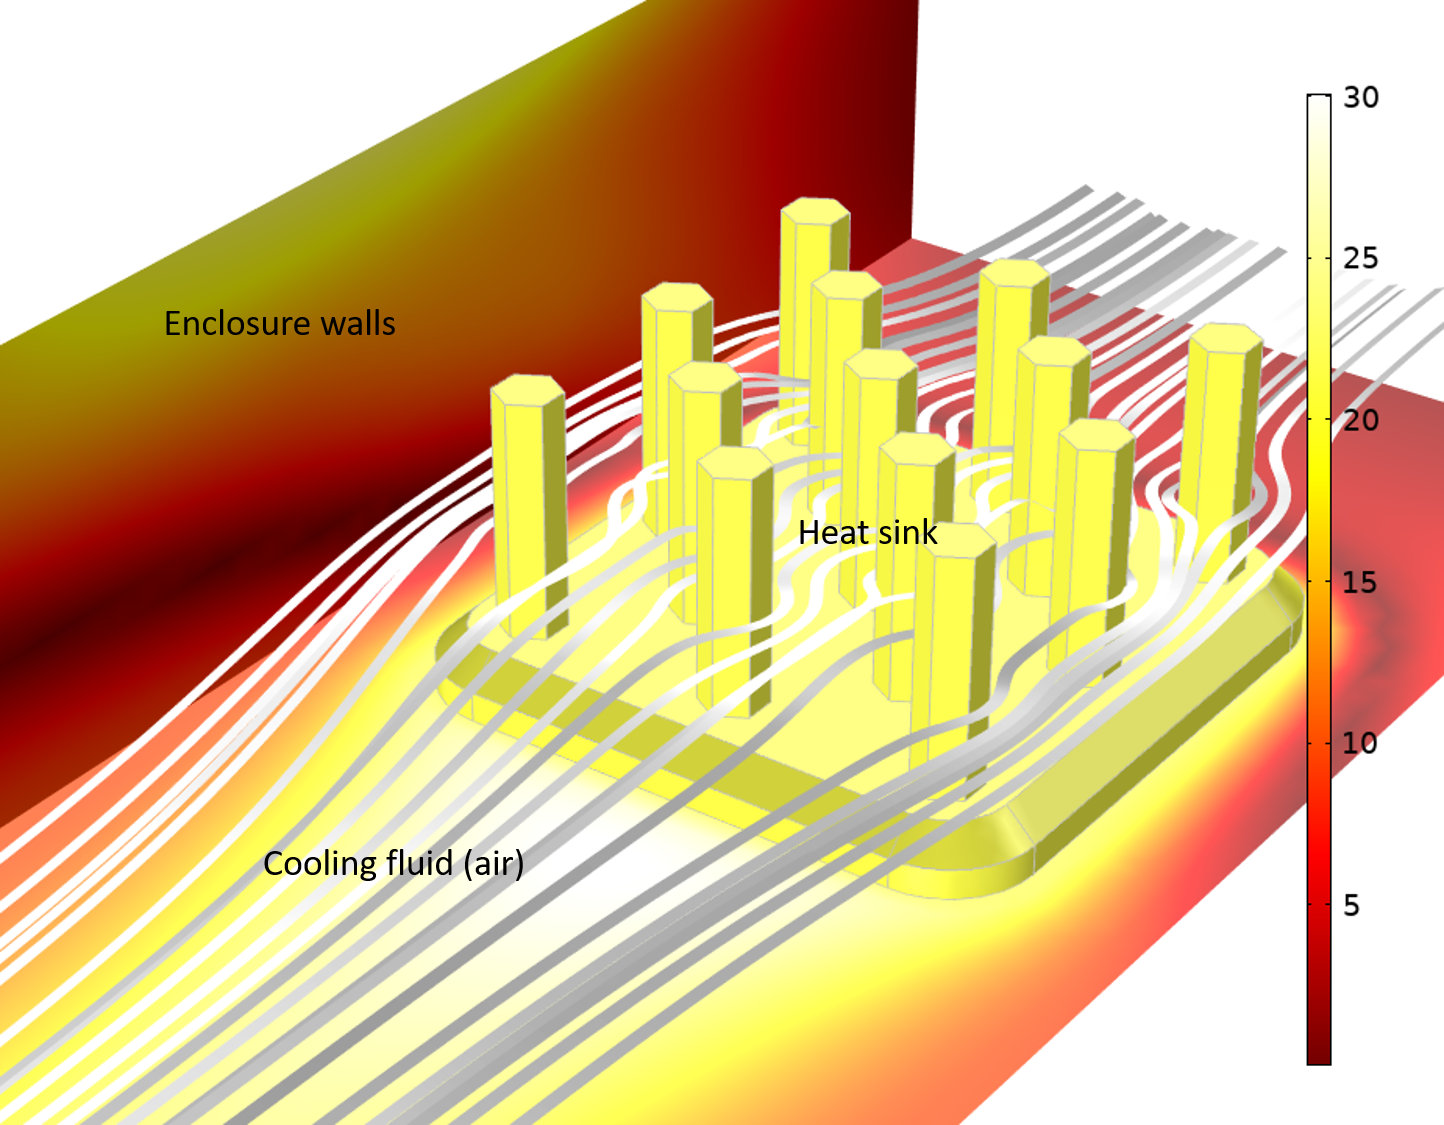 Simulation results showing a model of a heat sink in an electronics enclosure, with results visualized in a white–red color gradient and white streamlines showing the cooling fluid.